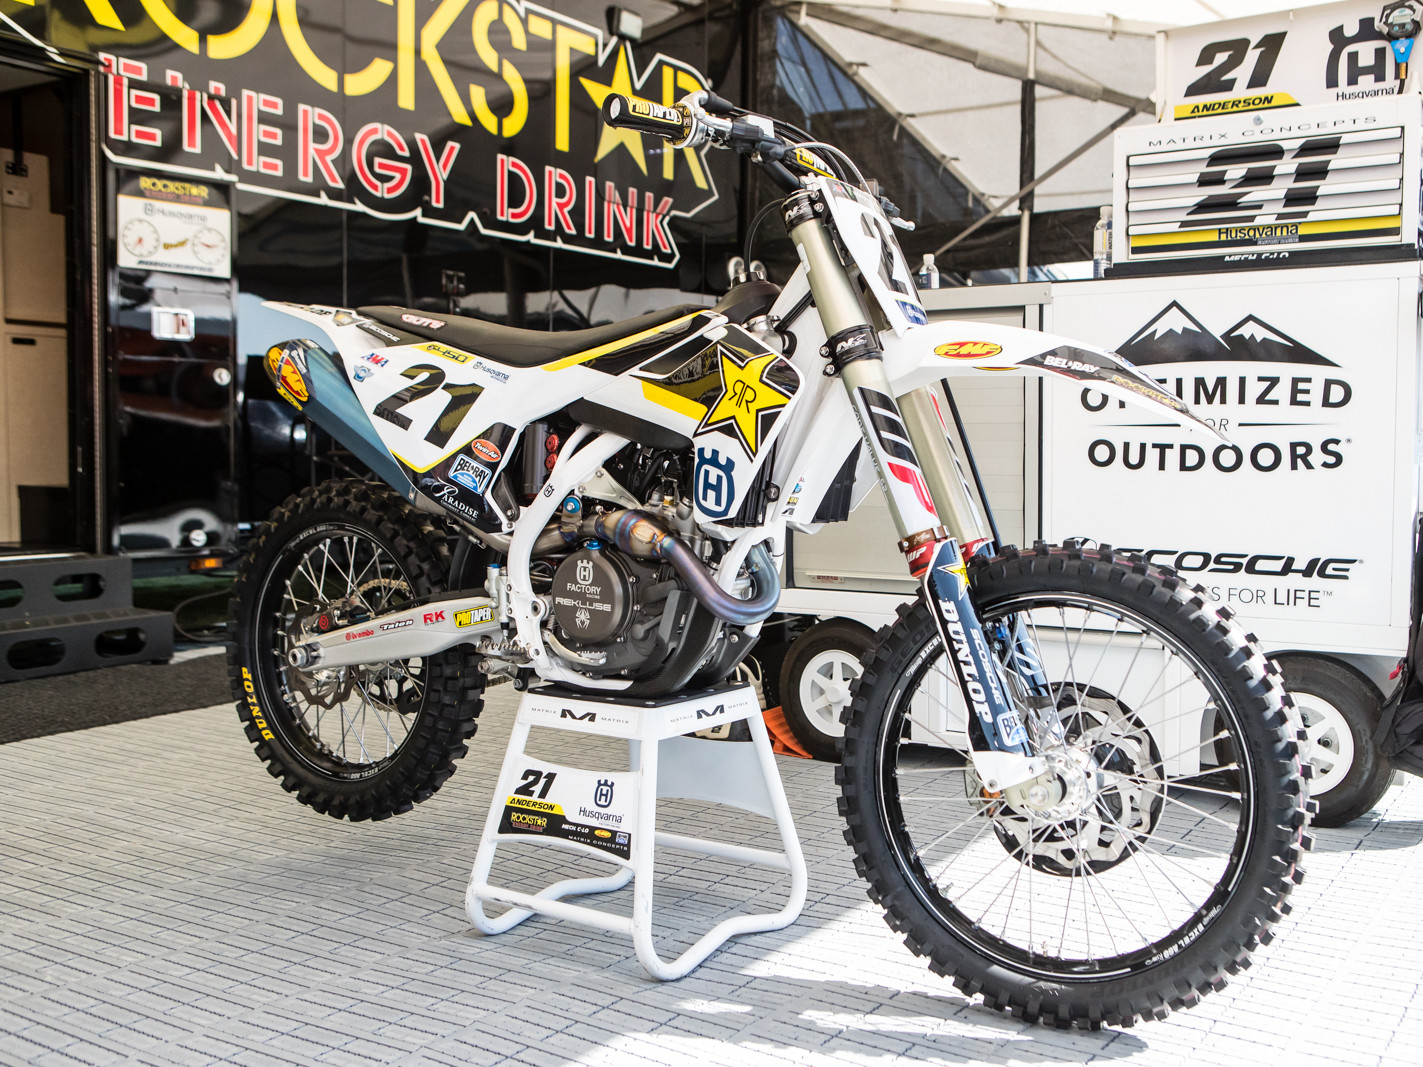 Jason however is on the updated machine. Both the KTM and Husqvarna will have new bodywork come A1.